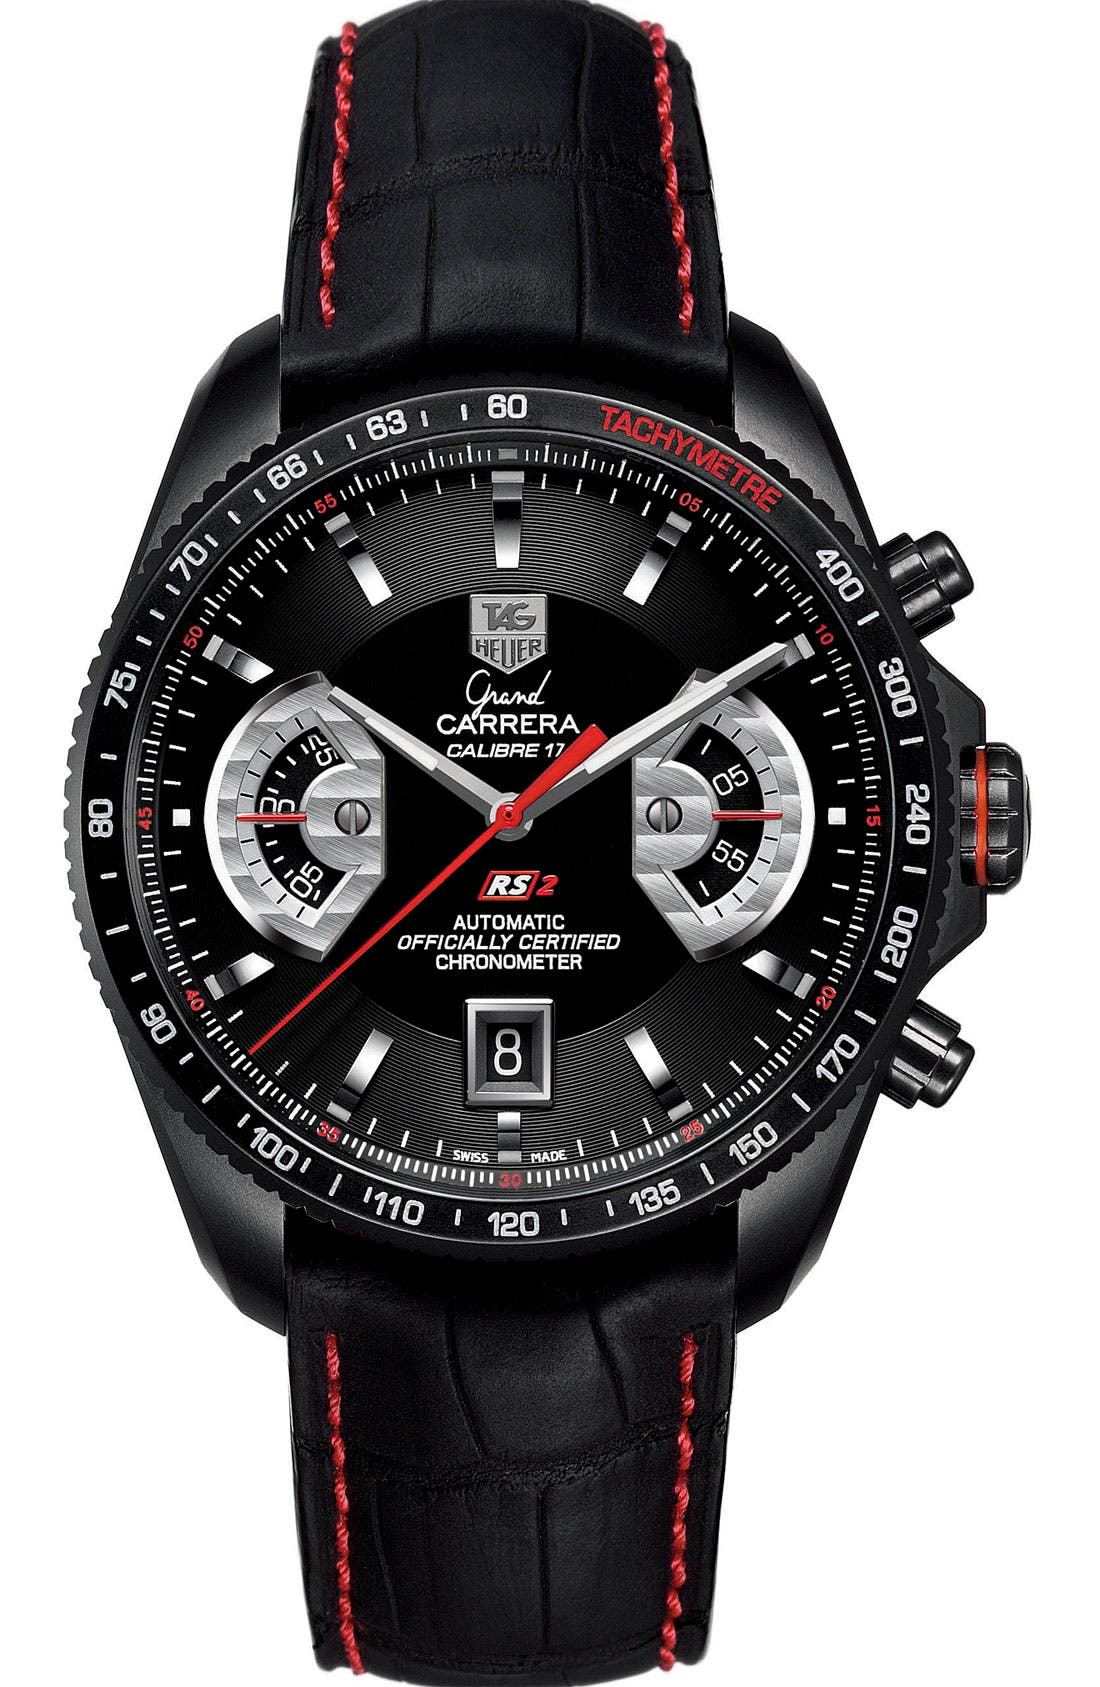 Main Image - TAG Heuer 'Grand Carrera' Chronograph Watch